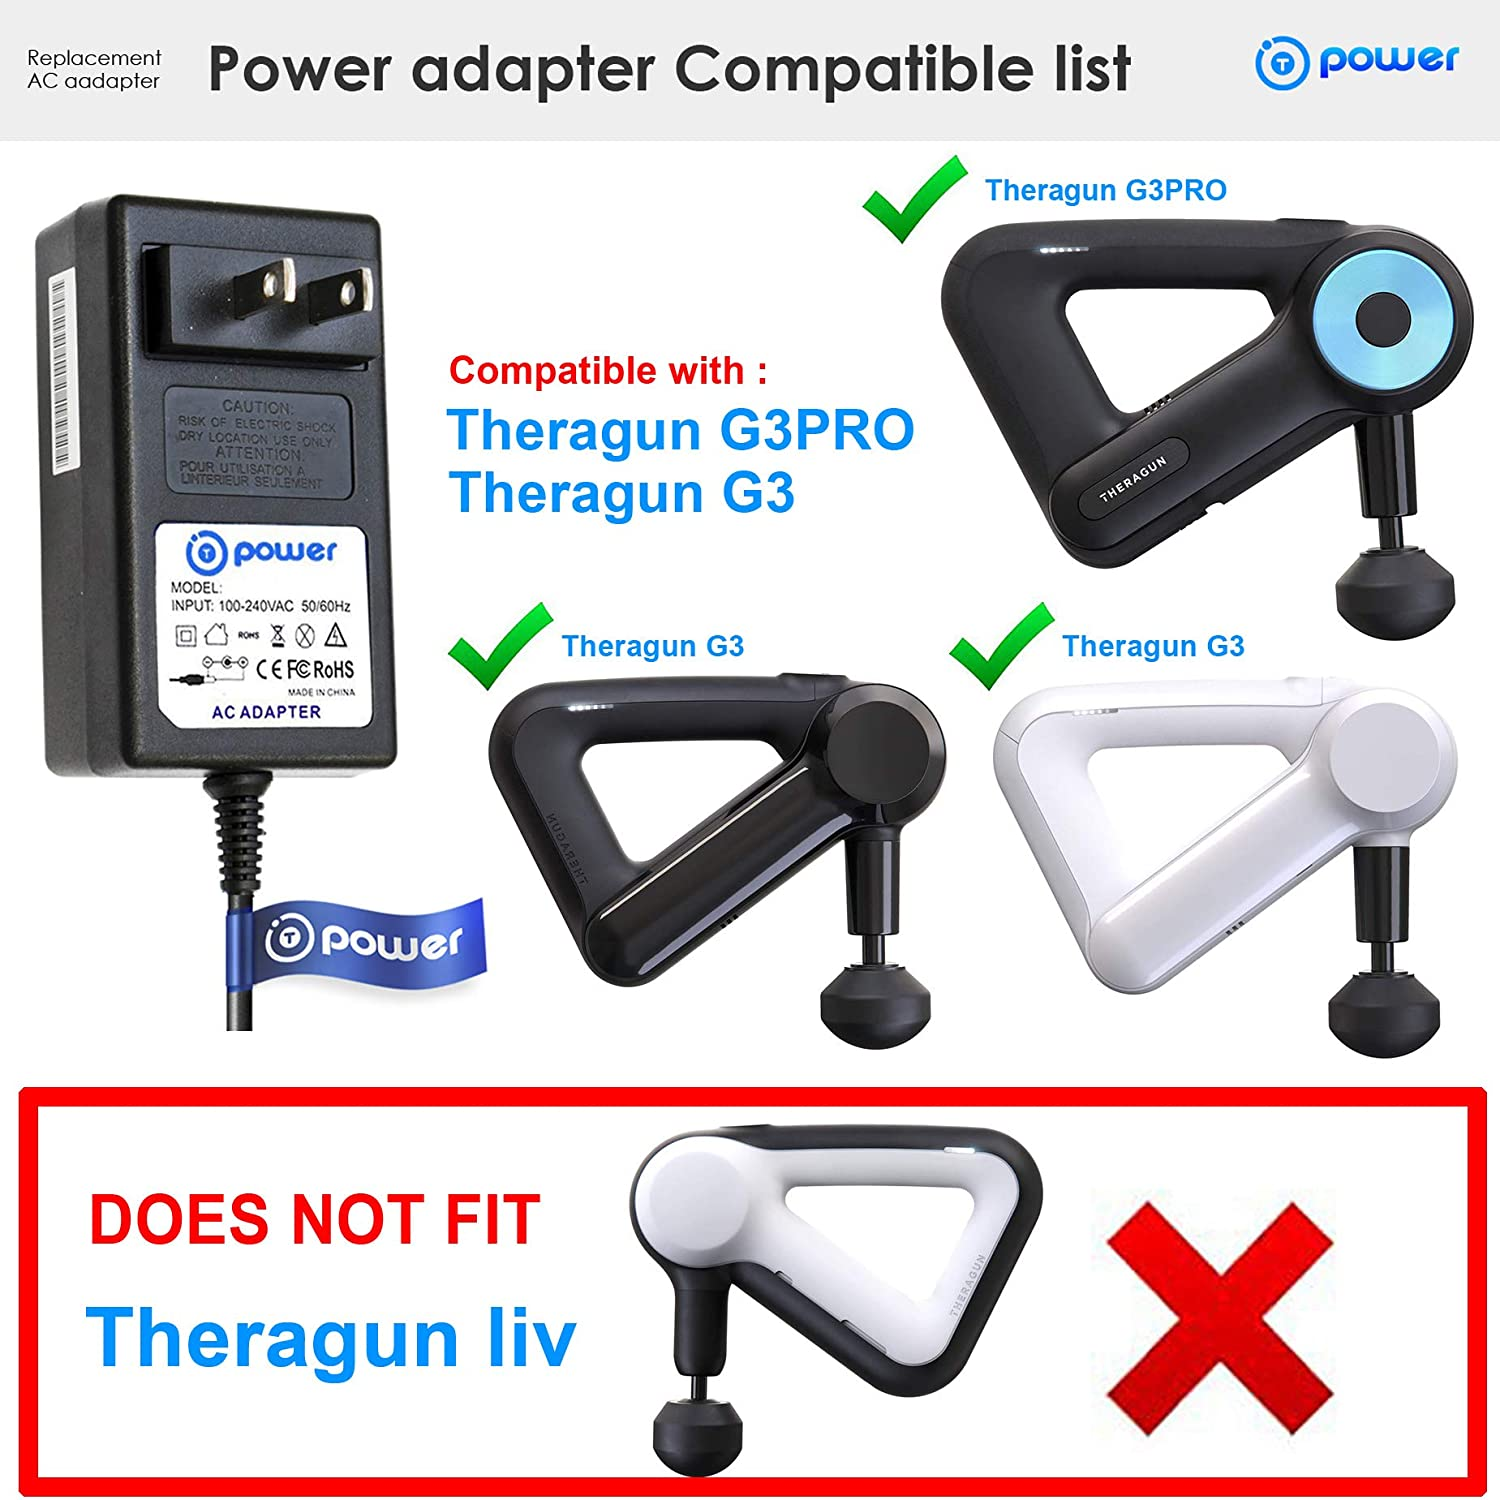 Theragun Rechargeable Battery for G3 Pro